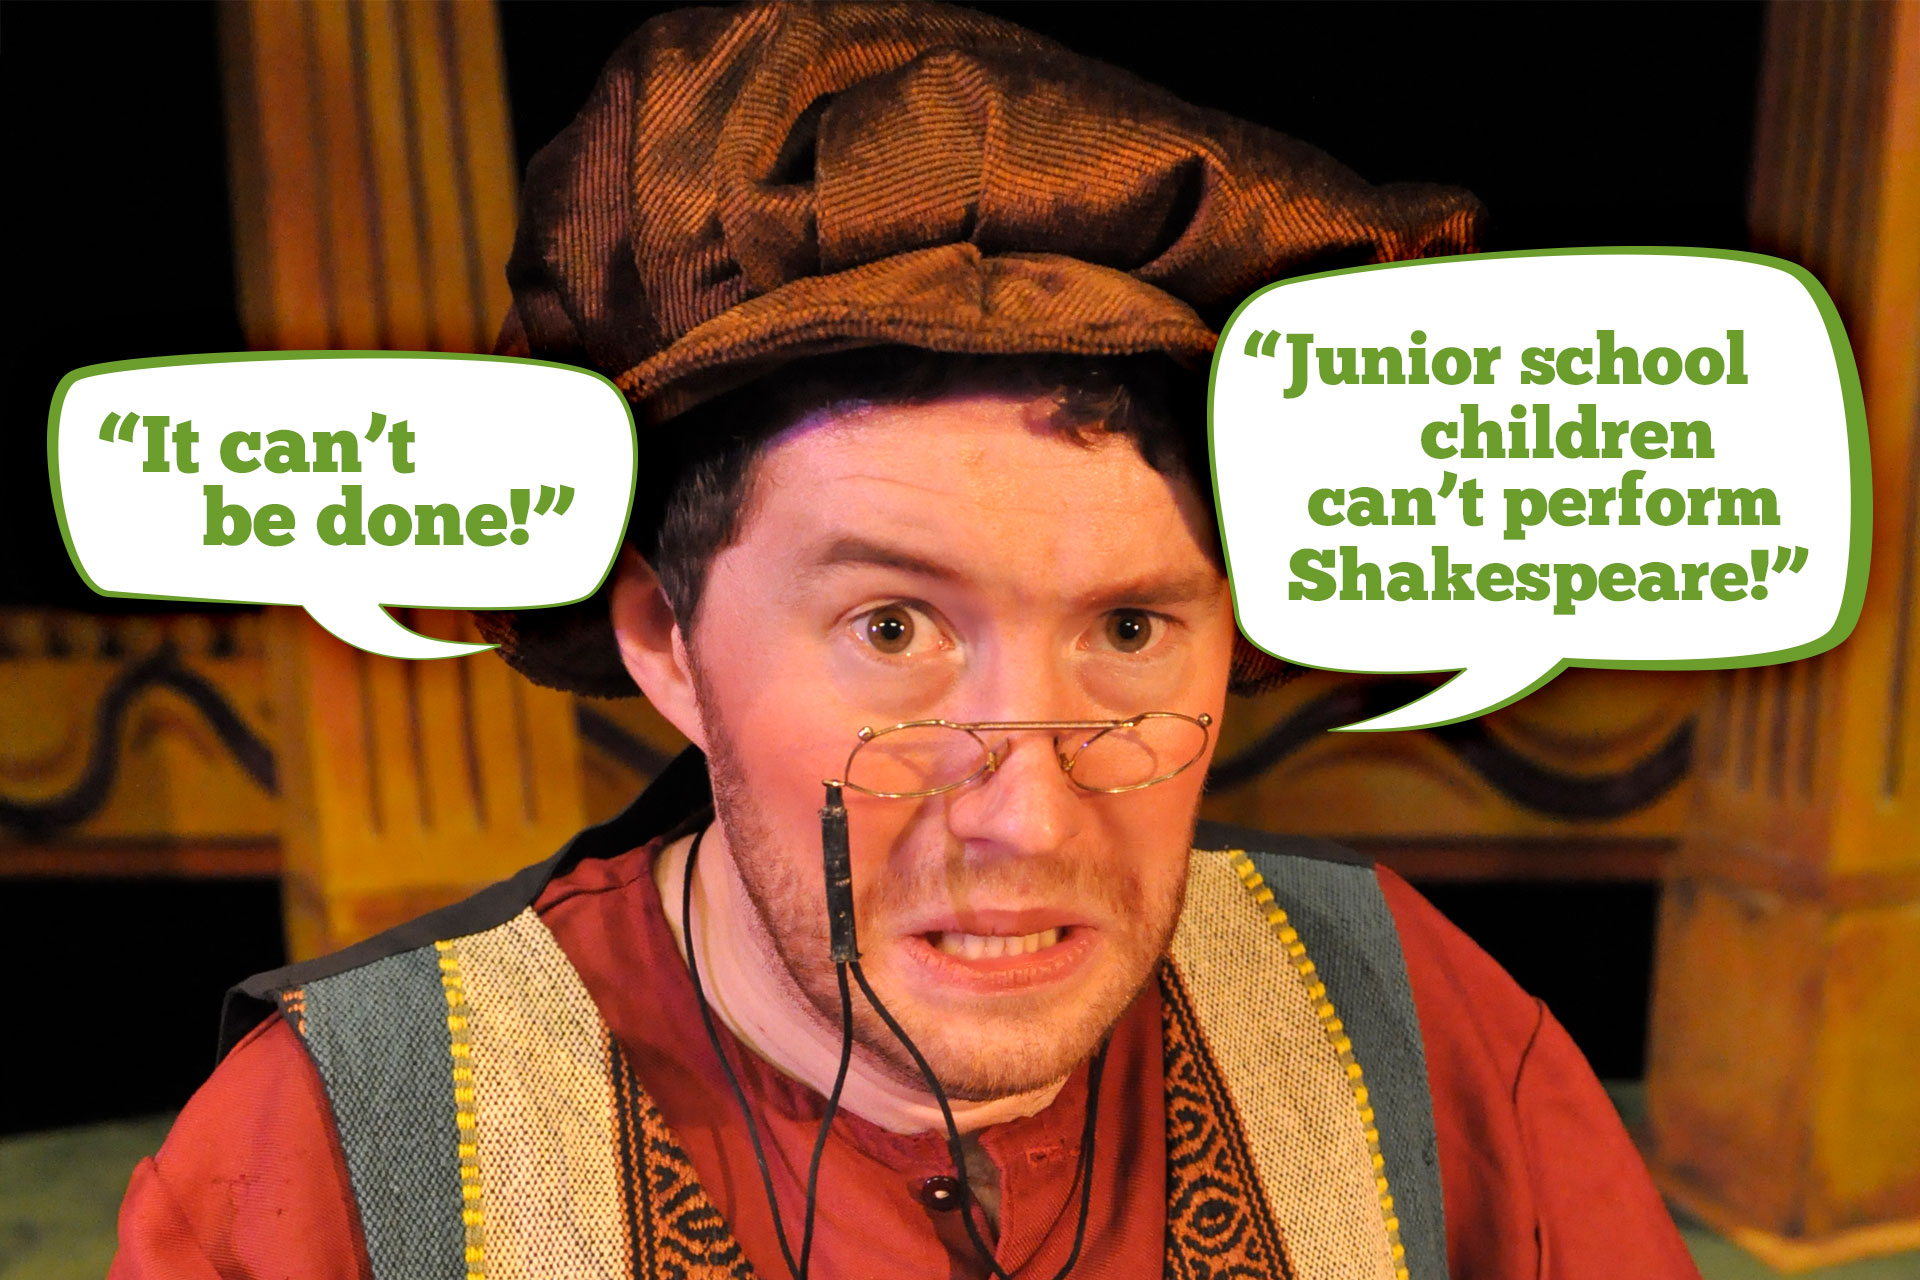 It can't be done! Junior school children can't perform Shakespeare!